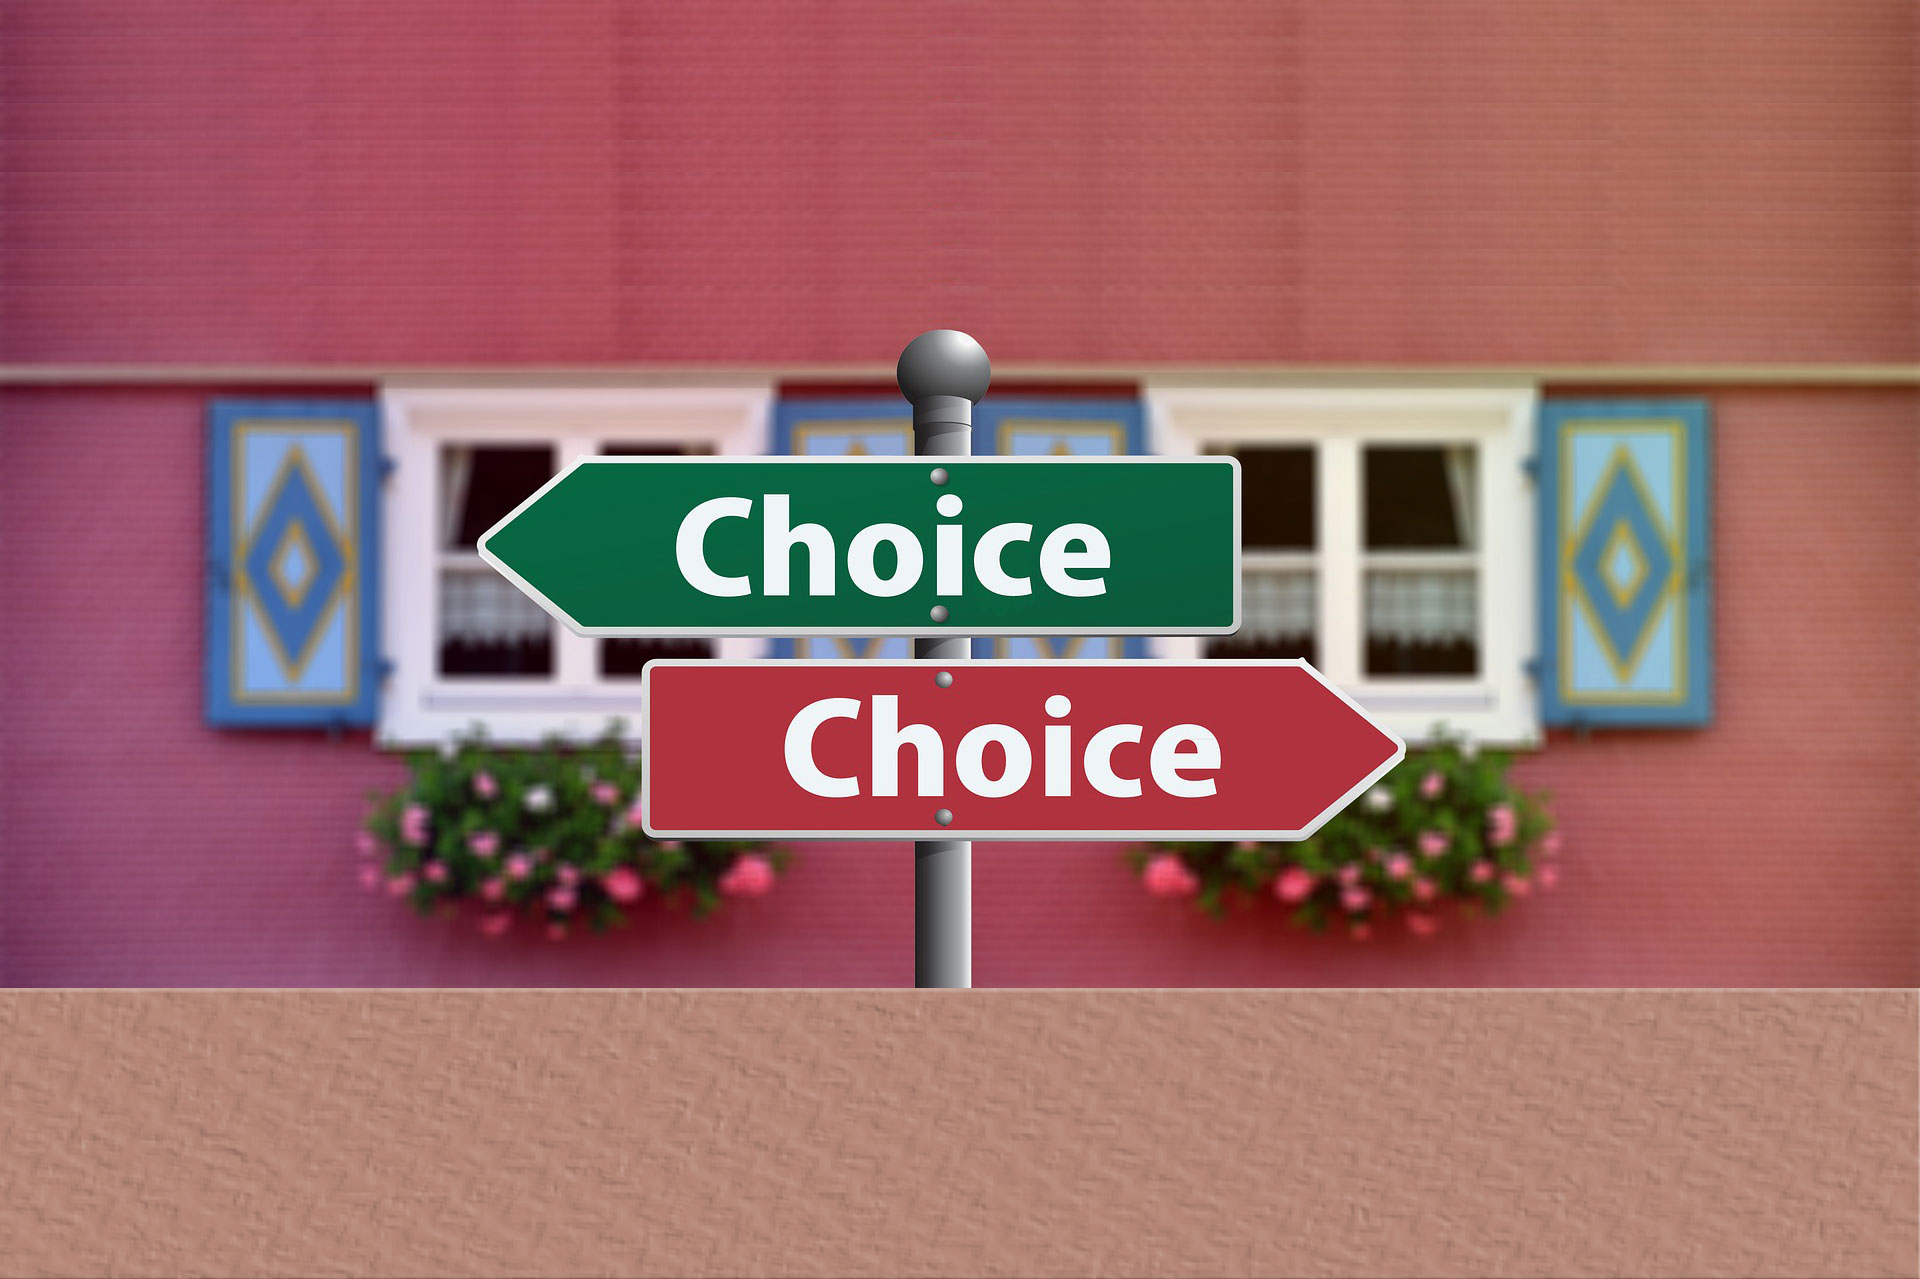 Making Decisions in Uncertain and Ambiguous Circumstances